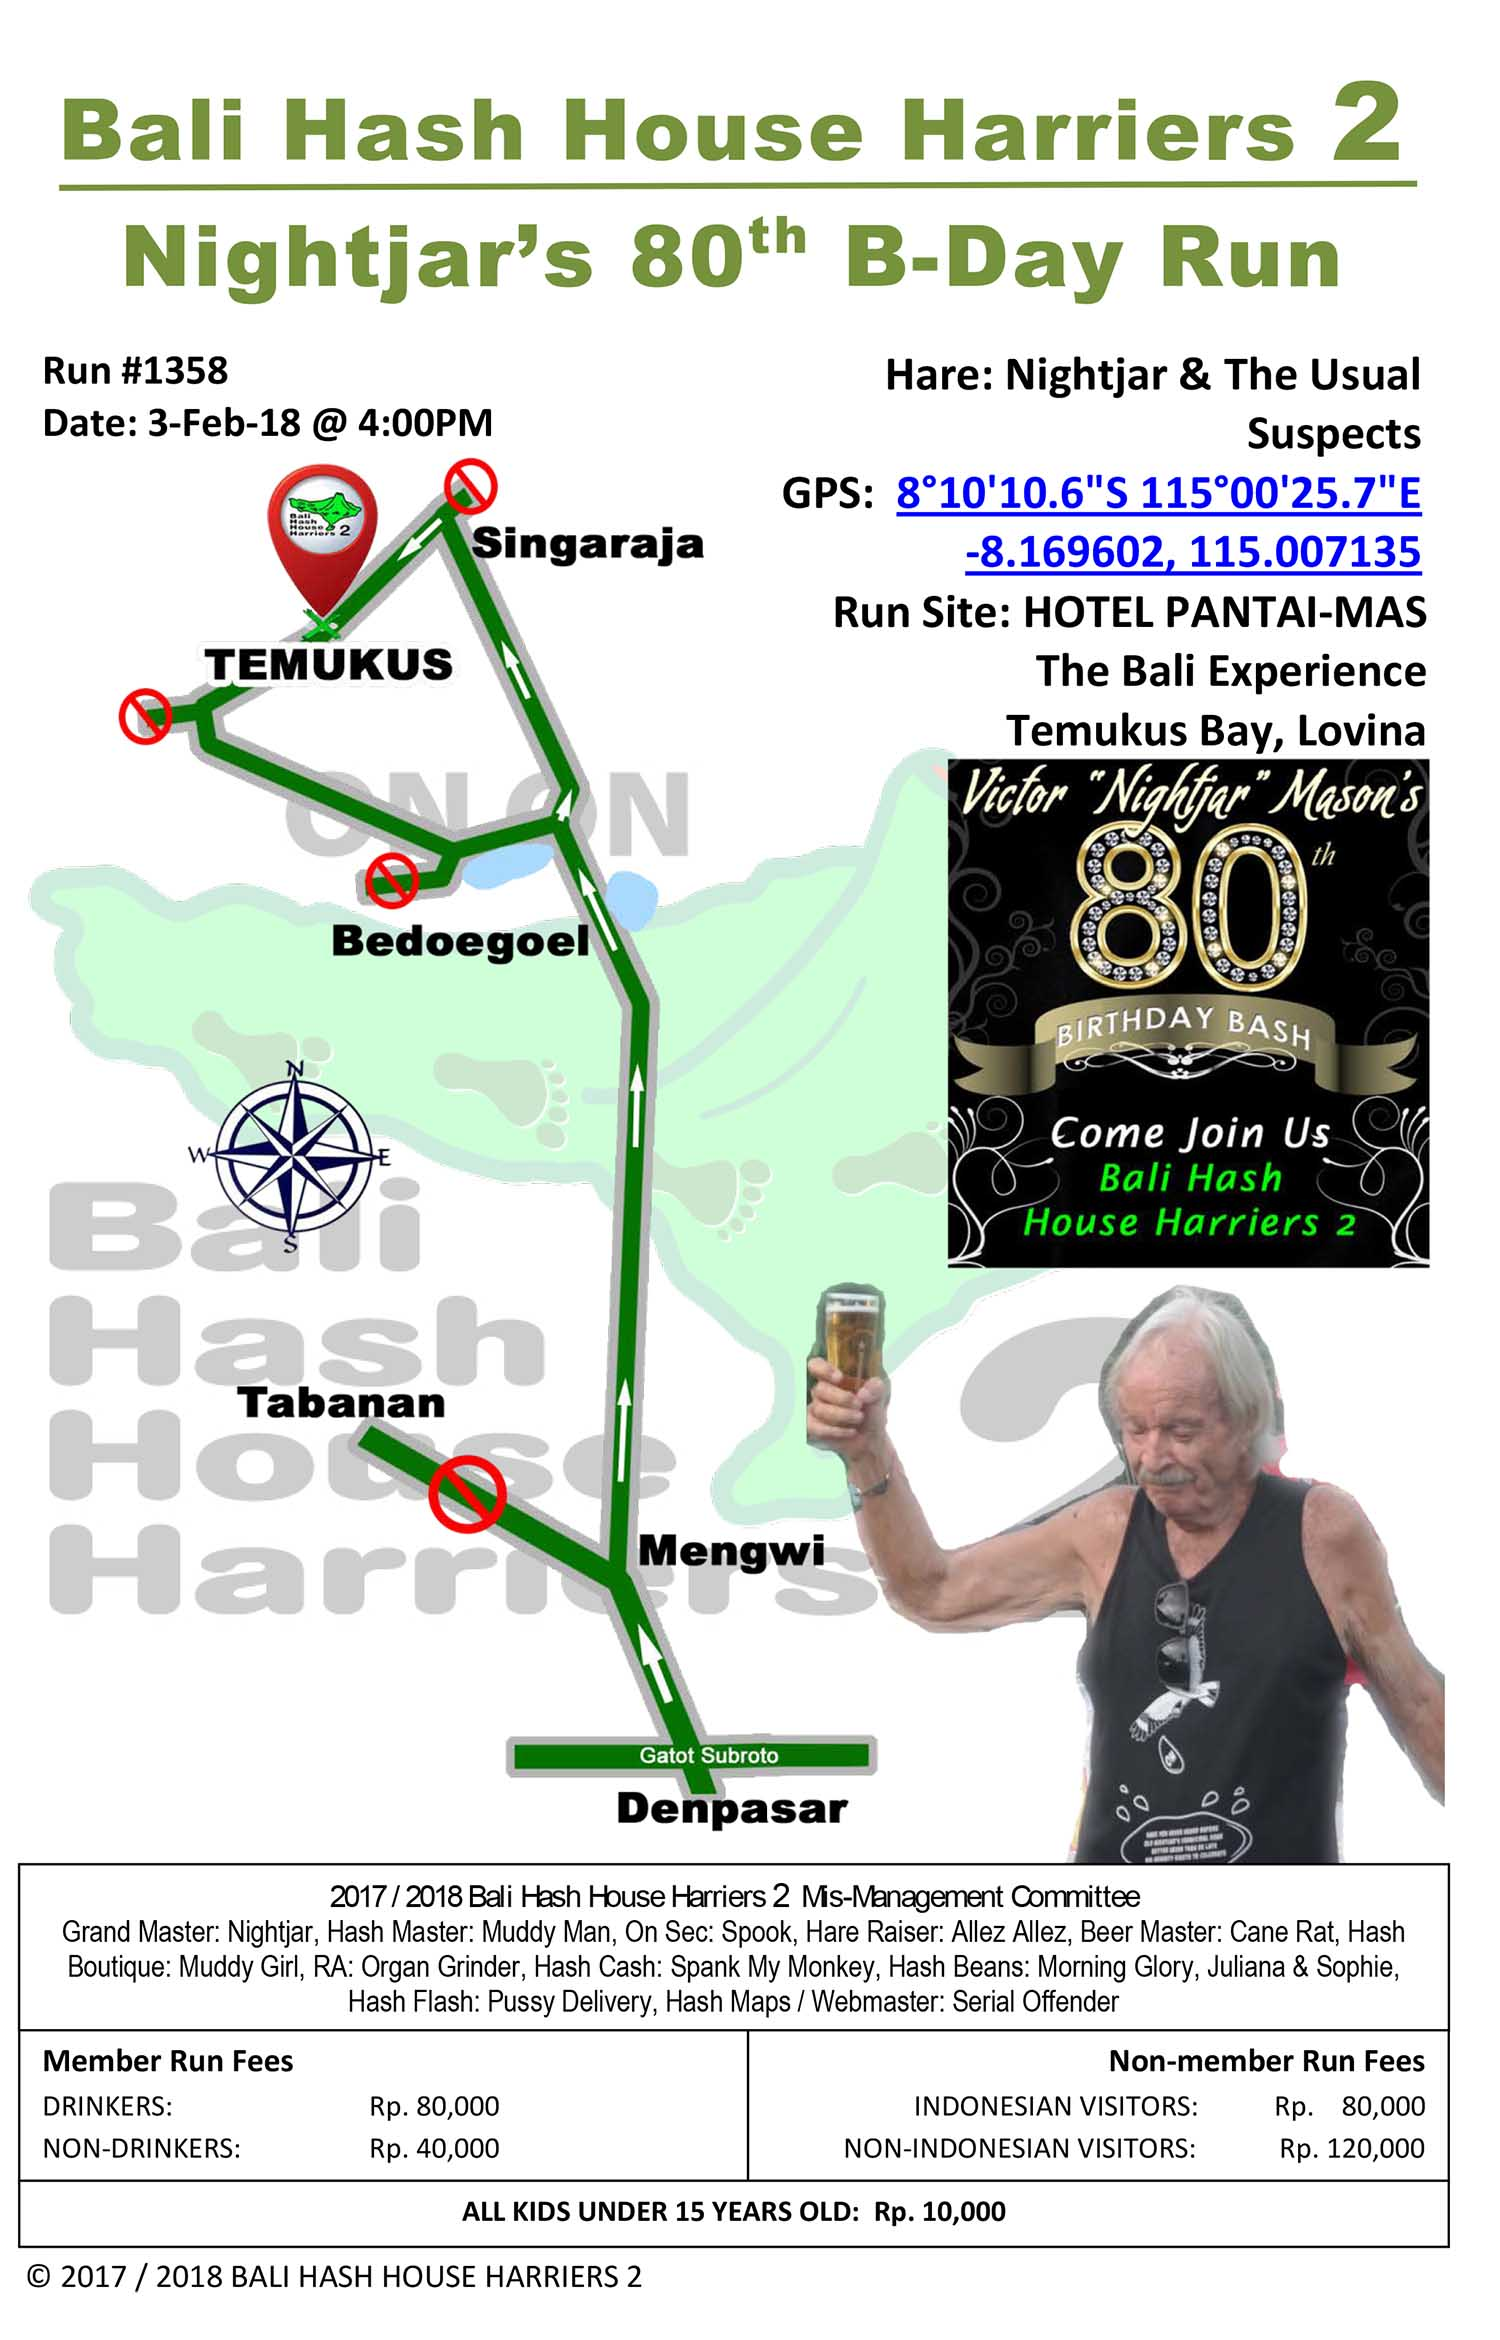 BHHH2 Next Run Map 1358 Hotel Pantai Mas, Temukus, Lovina 3-Feb-18